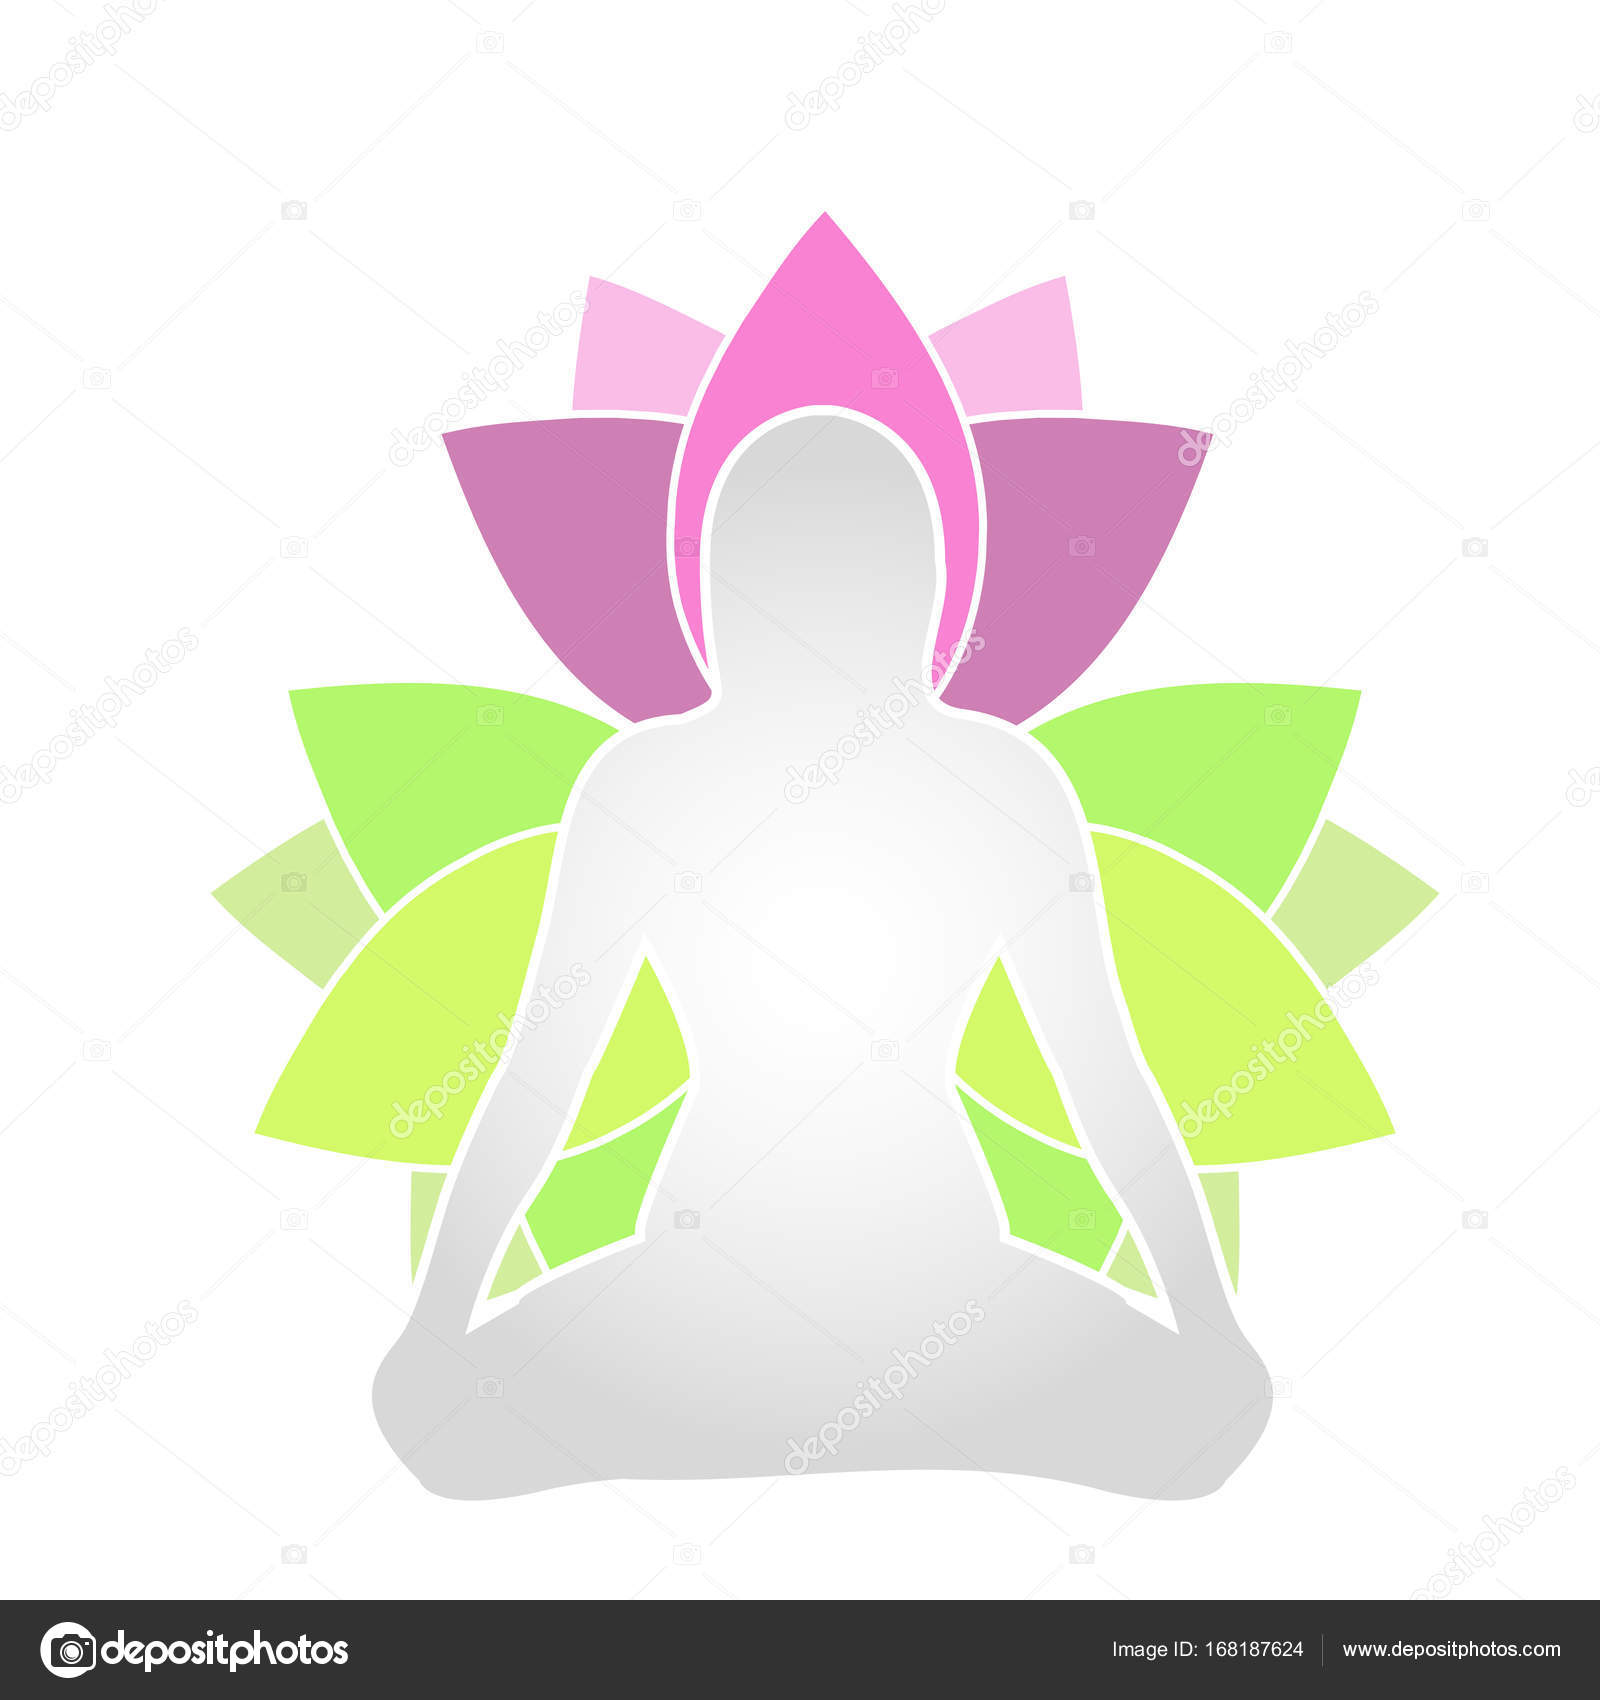 Lotus flower meaning in yoga flowers healthy lotus flower symbol yoga stock vector sanayamirza 168187624 izmirmasajfo